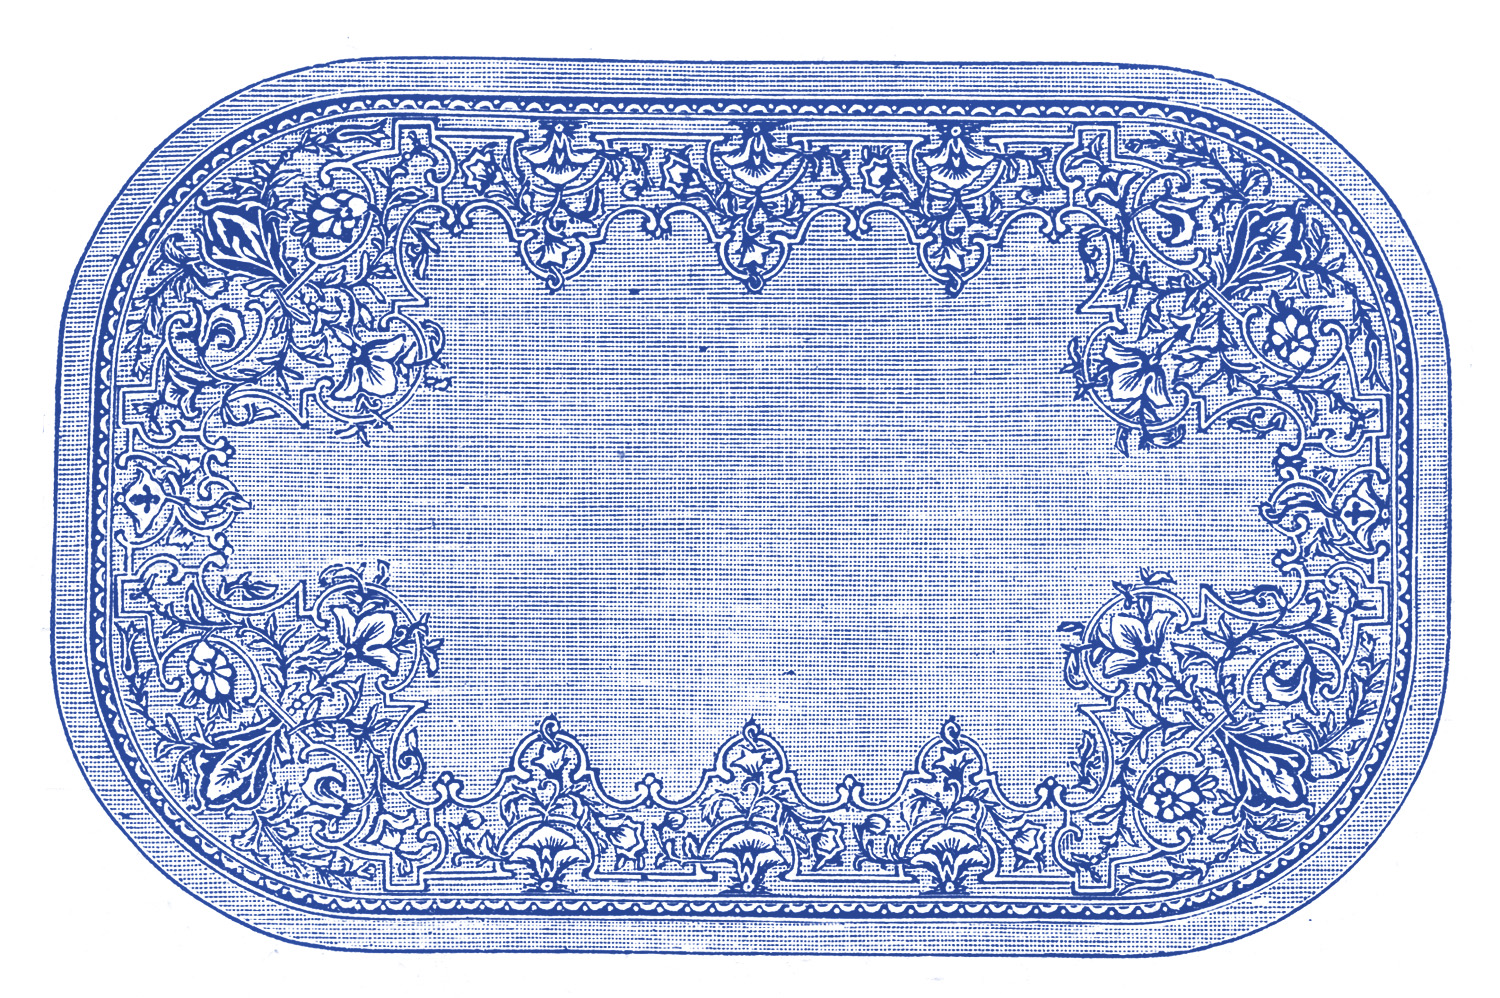 Rug clipart blue rug. Stock images carpets rugs